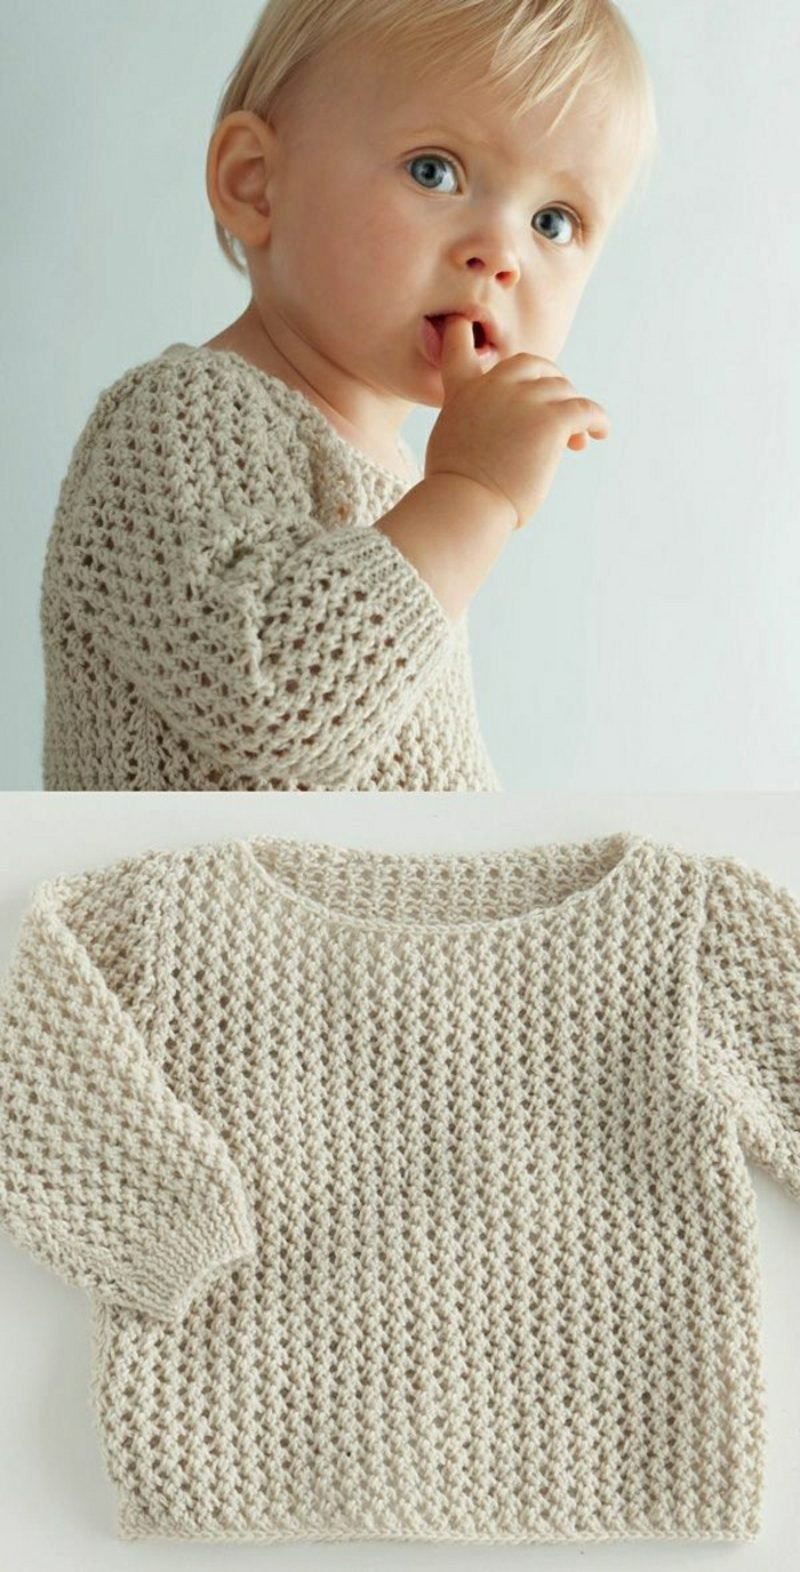 Baby Pullover stricken weiss originell